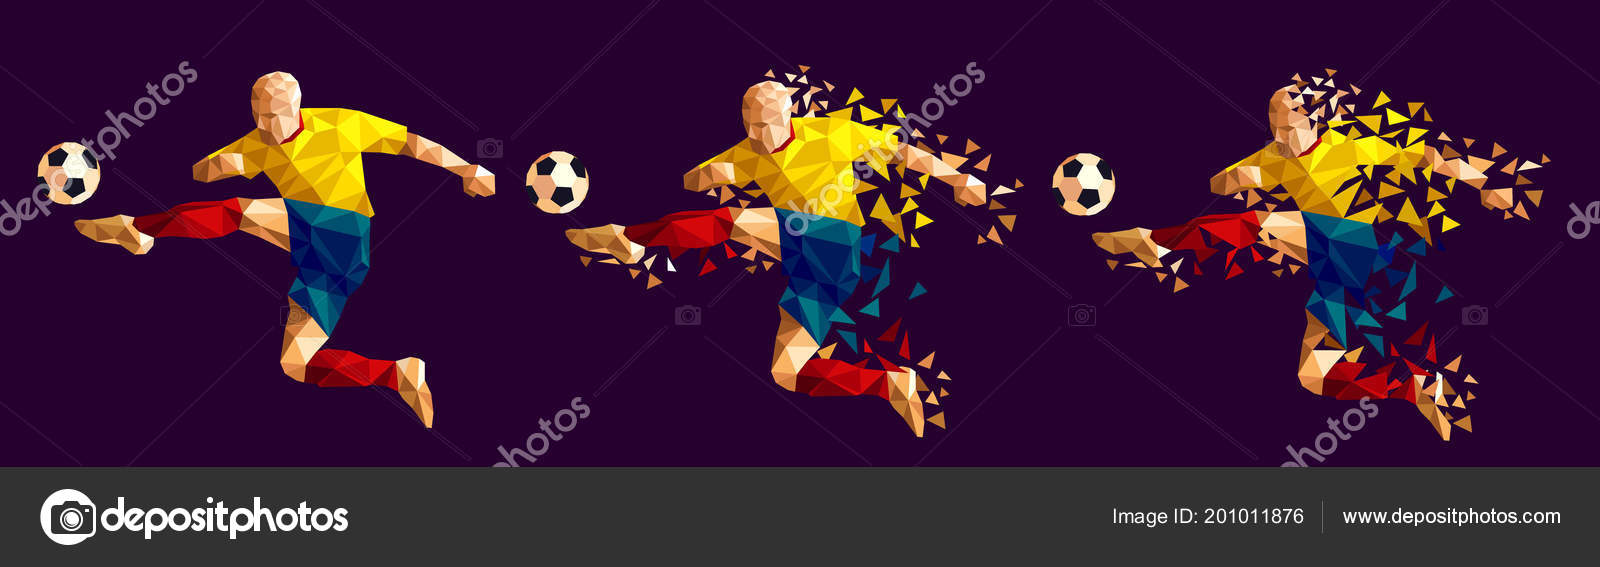 Vector illustration soccer football player low-poly style concept kits  uniform colour world cup 2018 russia championship — Vector by  vadymburla gmail.com 38d7c5695